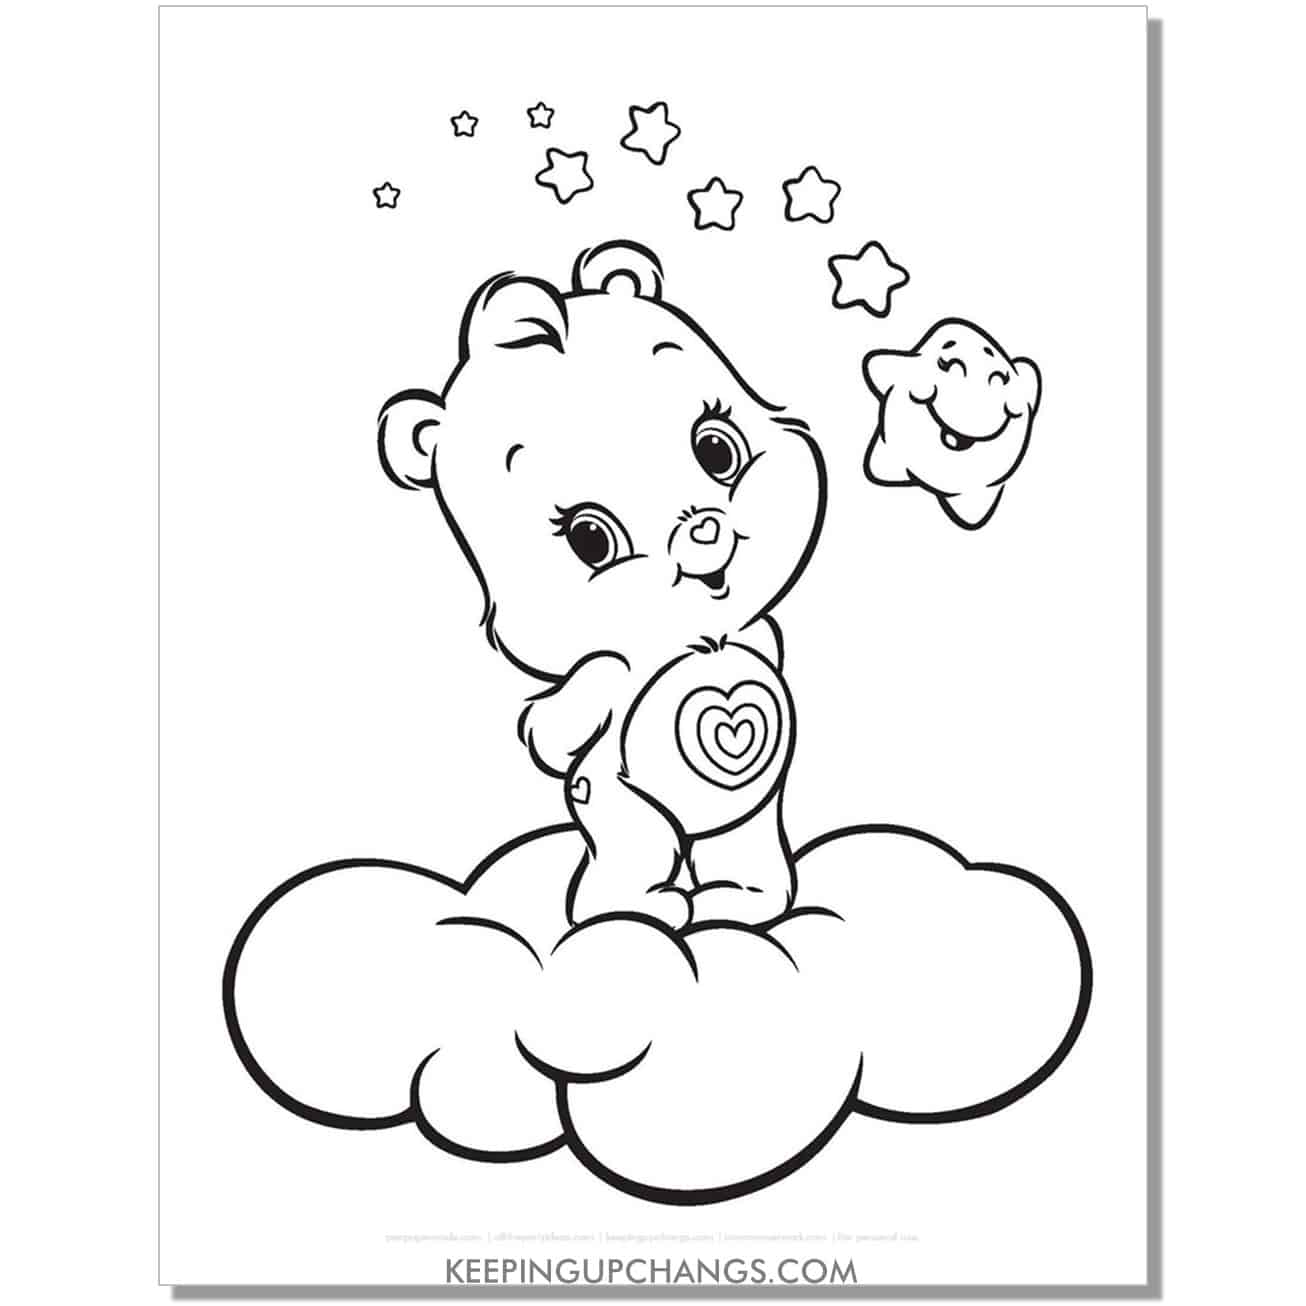 wonderheart care bear standing on cloud coloring page.